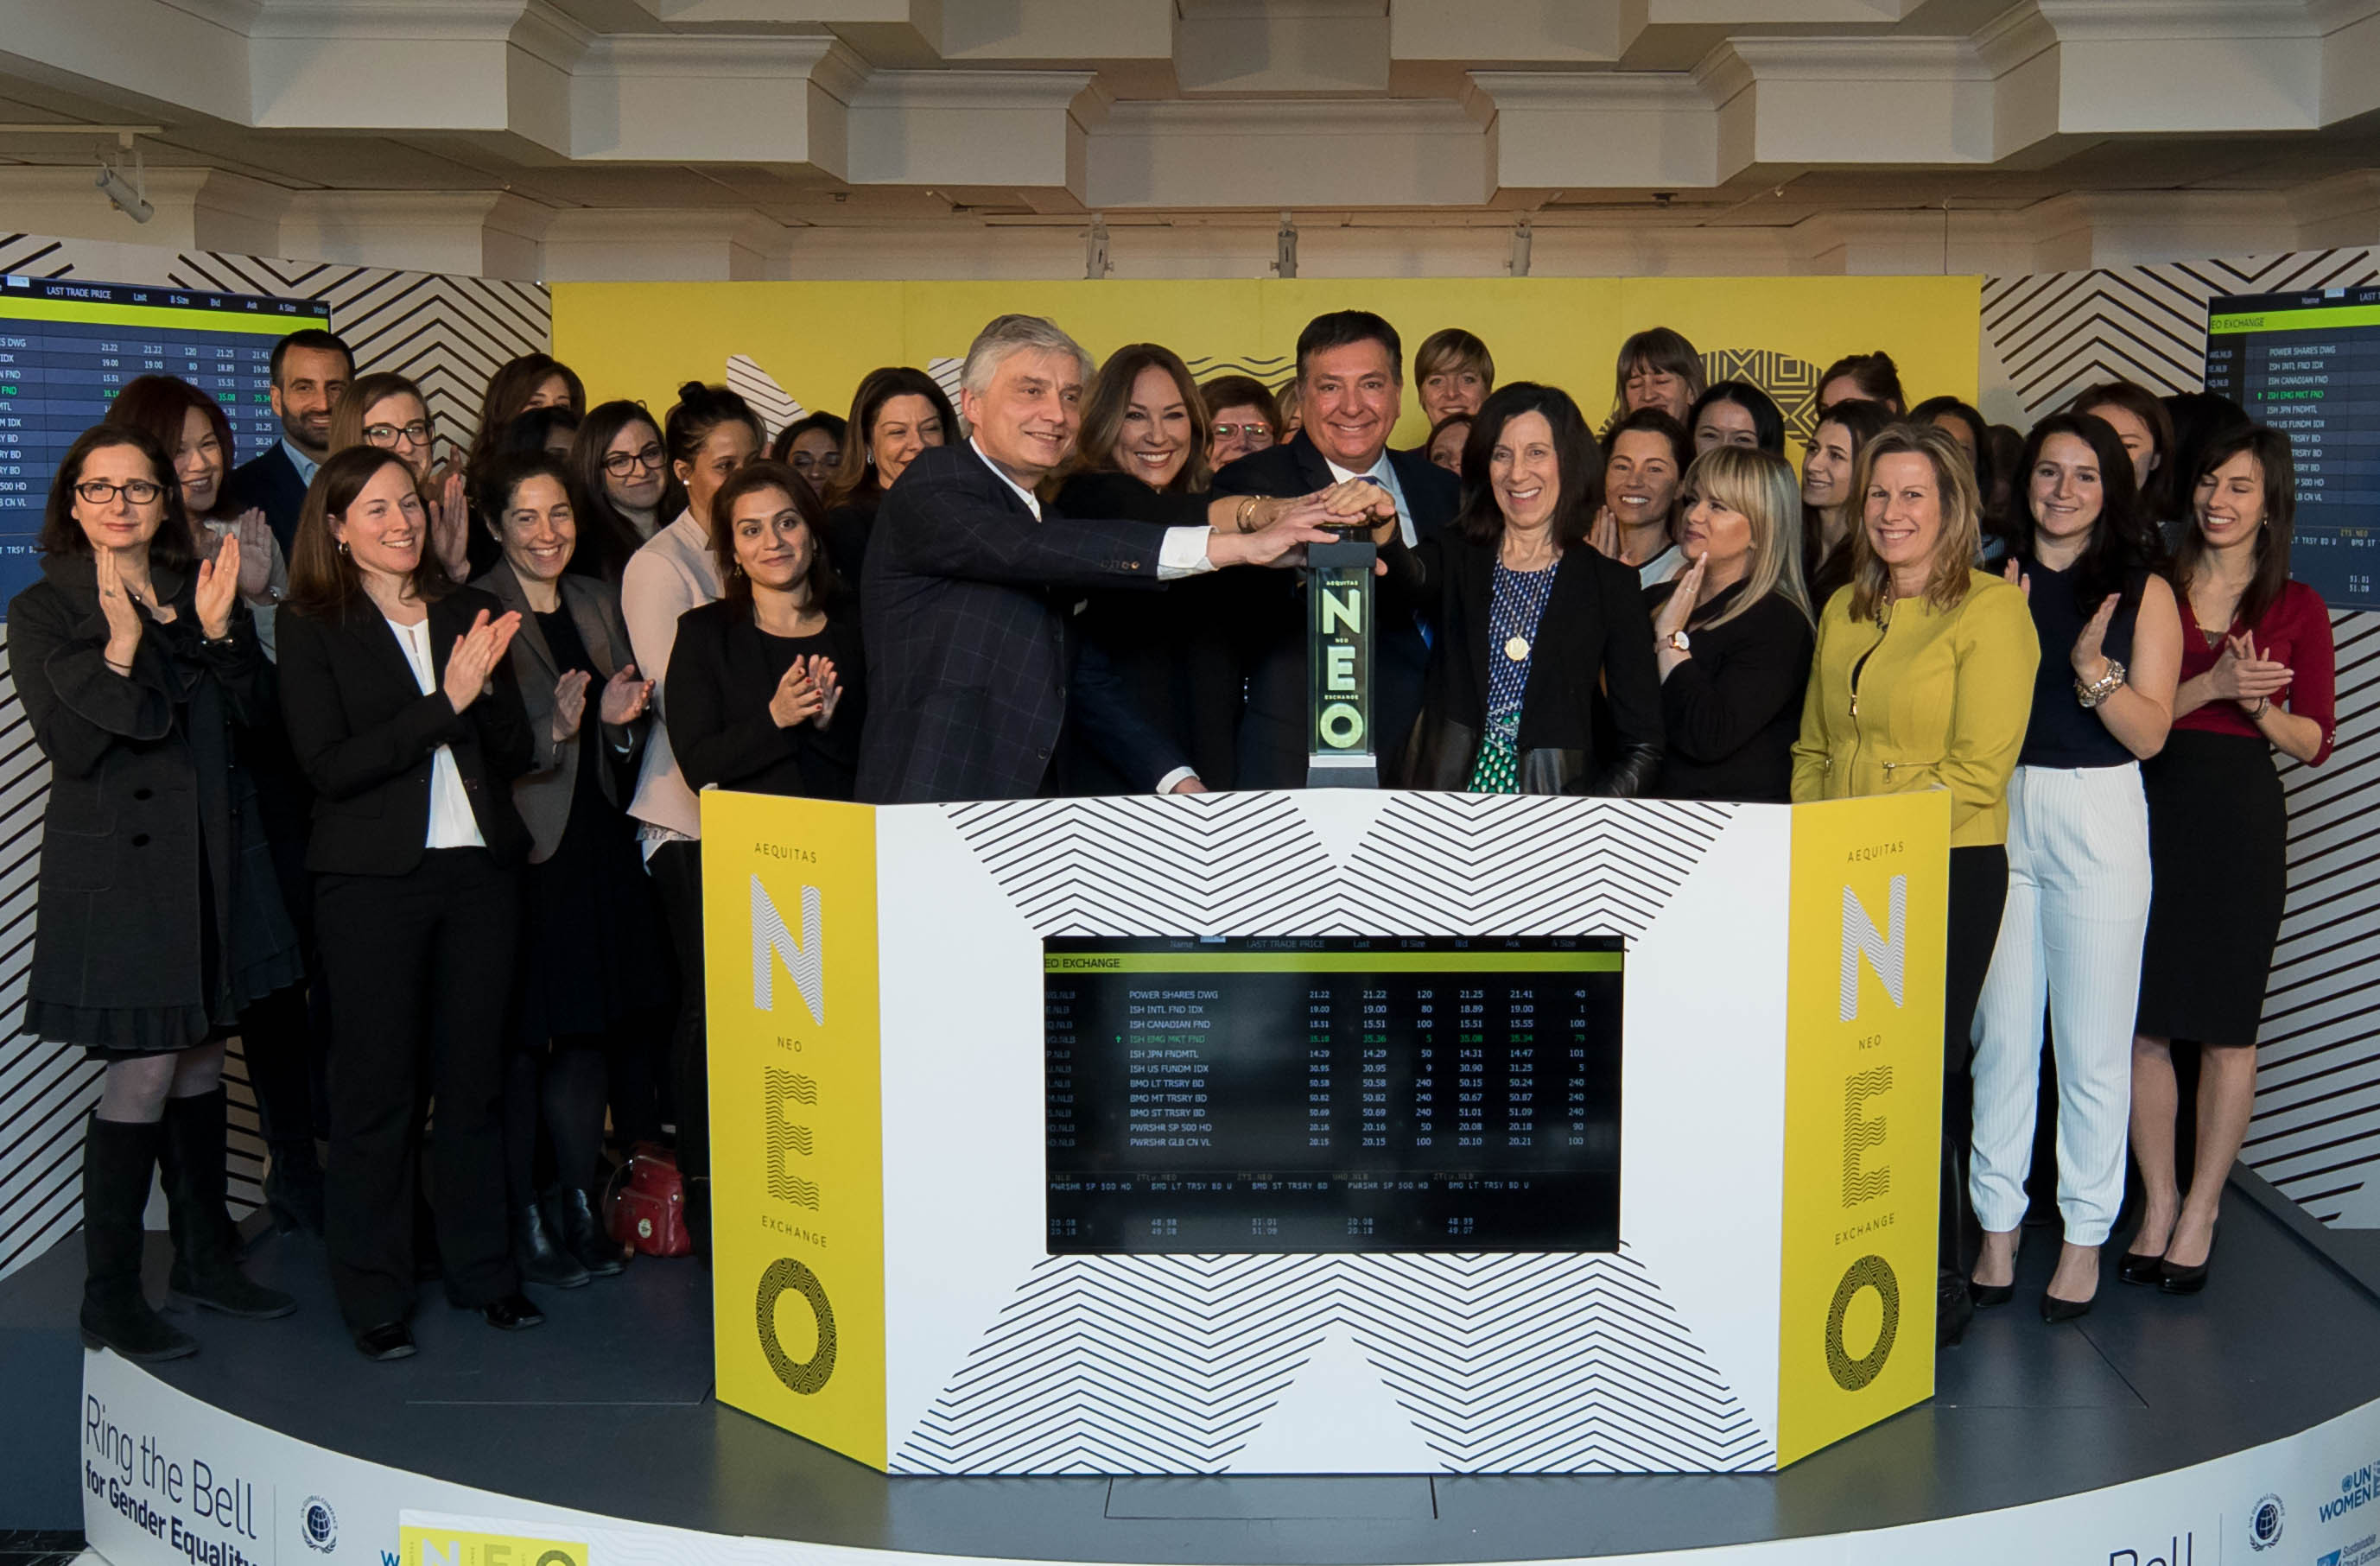 """Toronto – March 8, 2017 – Representatives of Ring the Bell for Gender Equality partners, including Women in ETFs Canadian Chapter Co-Head, Deborah Frame, joined Jos Schmitt - President and CEO, Aequitas NEO Exchange Inc., to open the NEO Exchange in celebration of International Women's Day 2017. The Honourable Charles Sousa – Ontario's Minister of Finance, Som Seif - Founder and CEO, Purpose Investments, Carrie Kirkman - Chair, G(irls)20 and Mariefaye Bechrakis,- Human Rights and Gender Equality Consultant, UN Global Compact, honoured the celebration with their participation. This third annual event, organized by Women in ETFs and UN Women, focused on the theme """"Women at Work"""". (Photo: Business Wire)"""